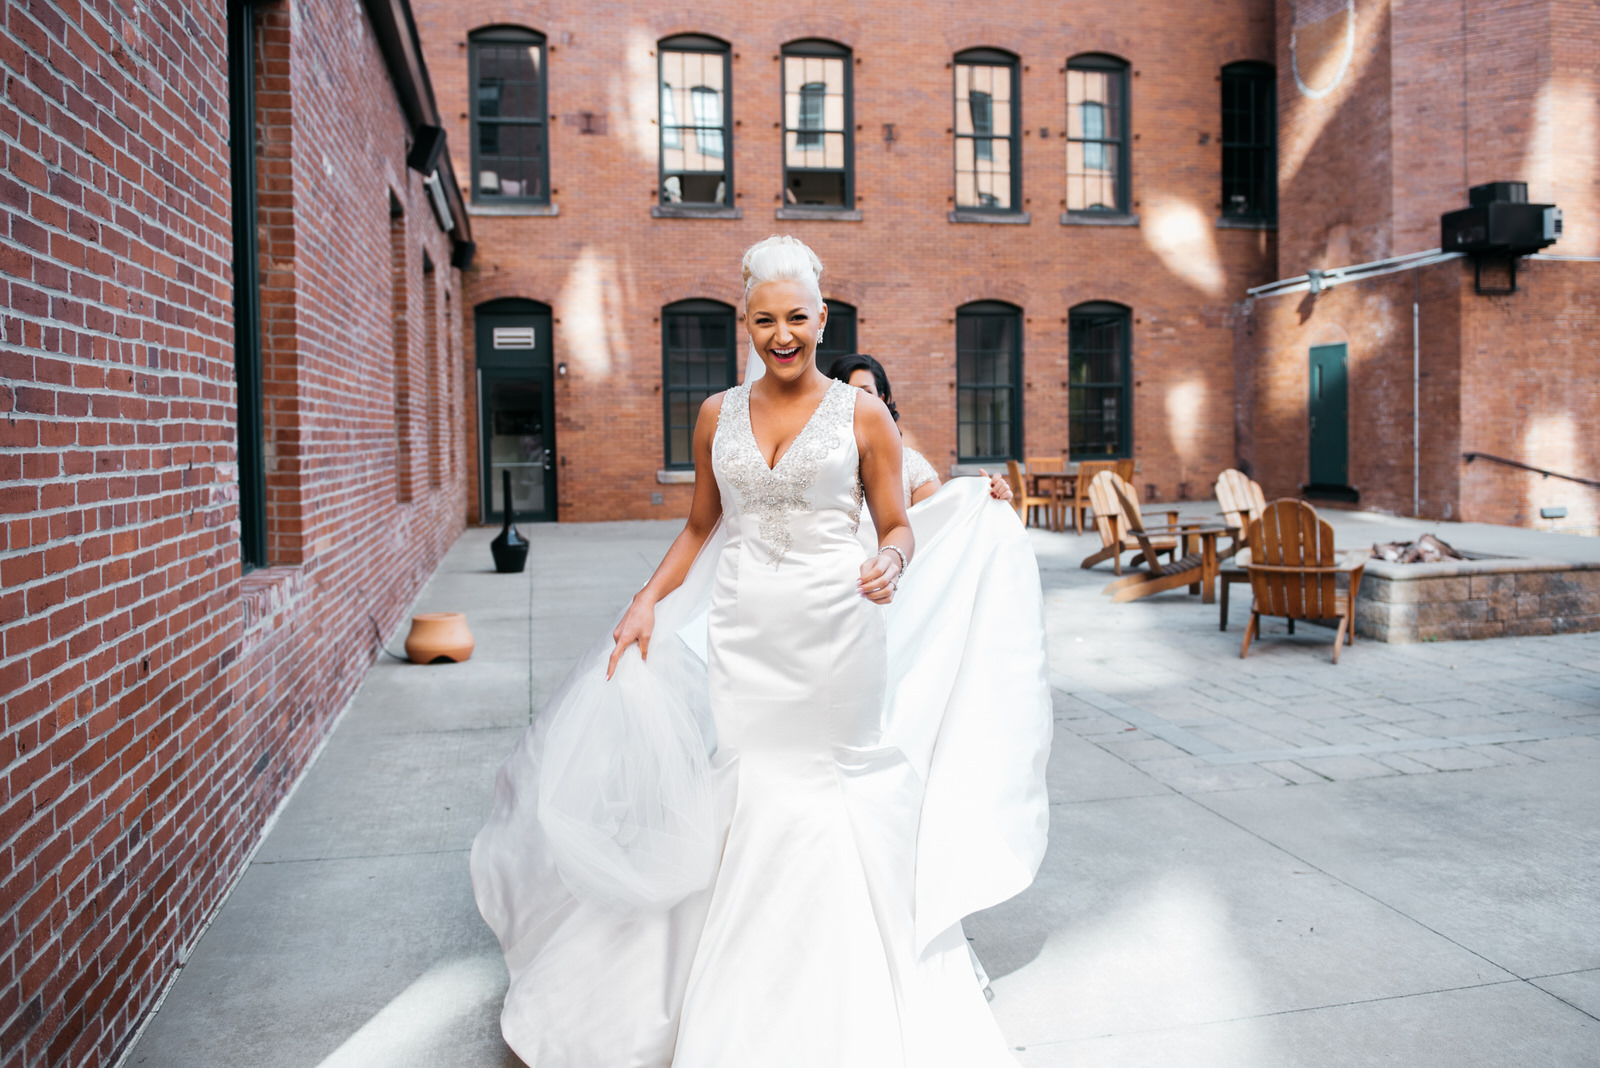 hilton_garden_inn_southpointe_pittsburgh_weddings_31.jpg